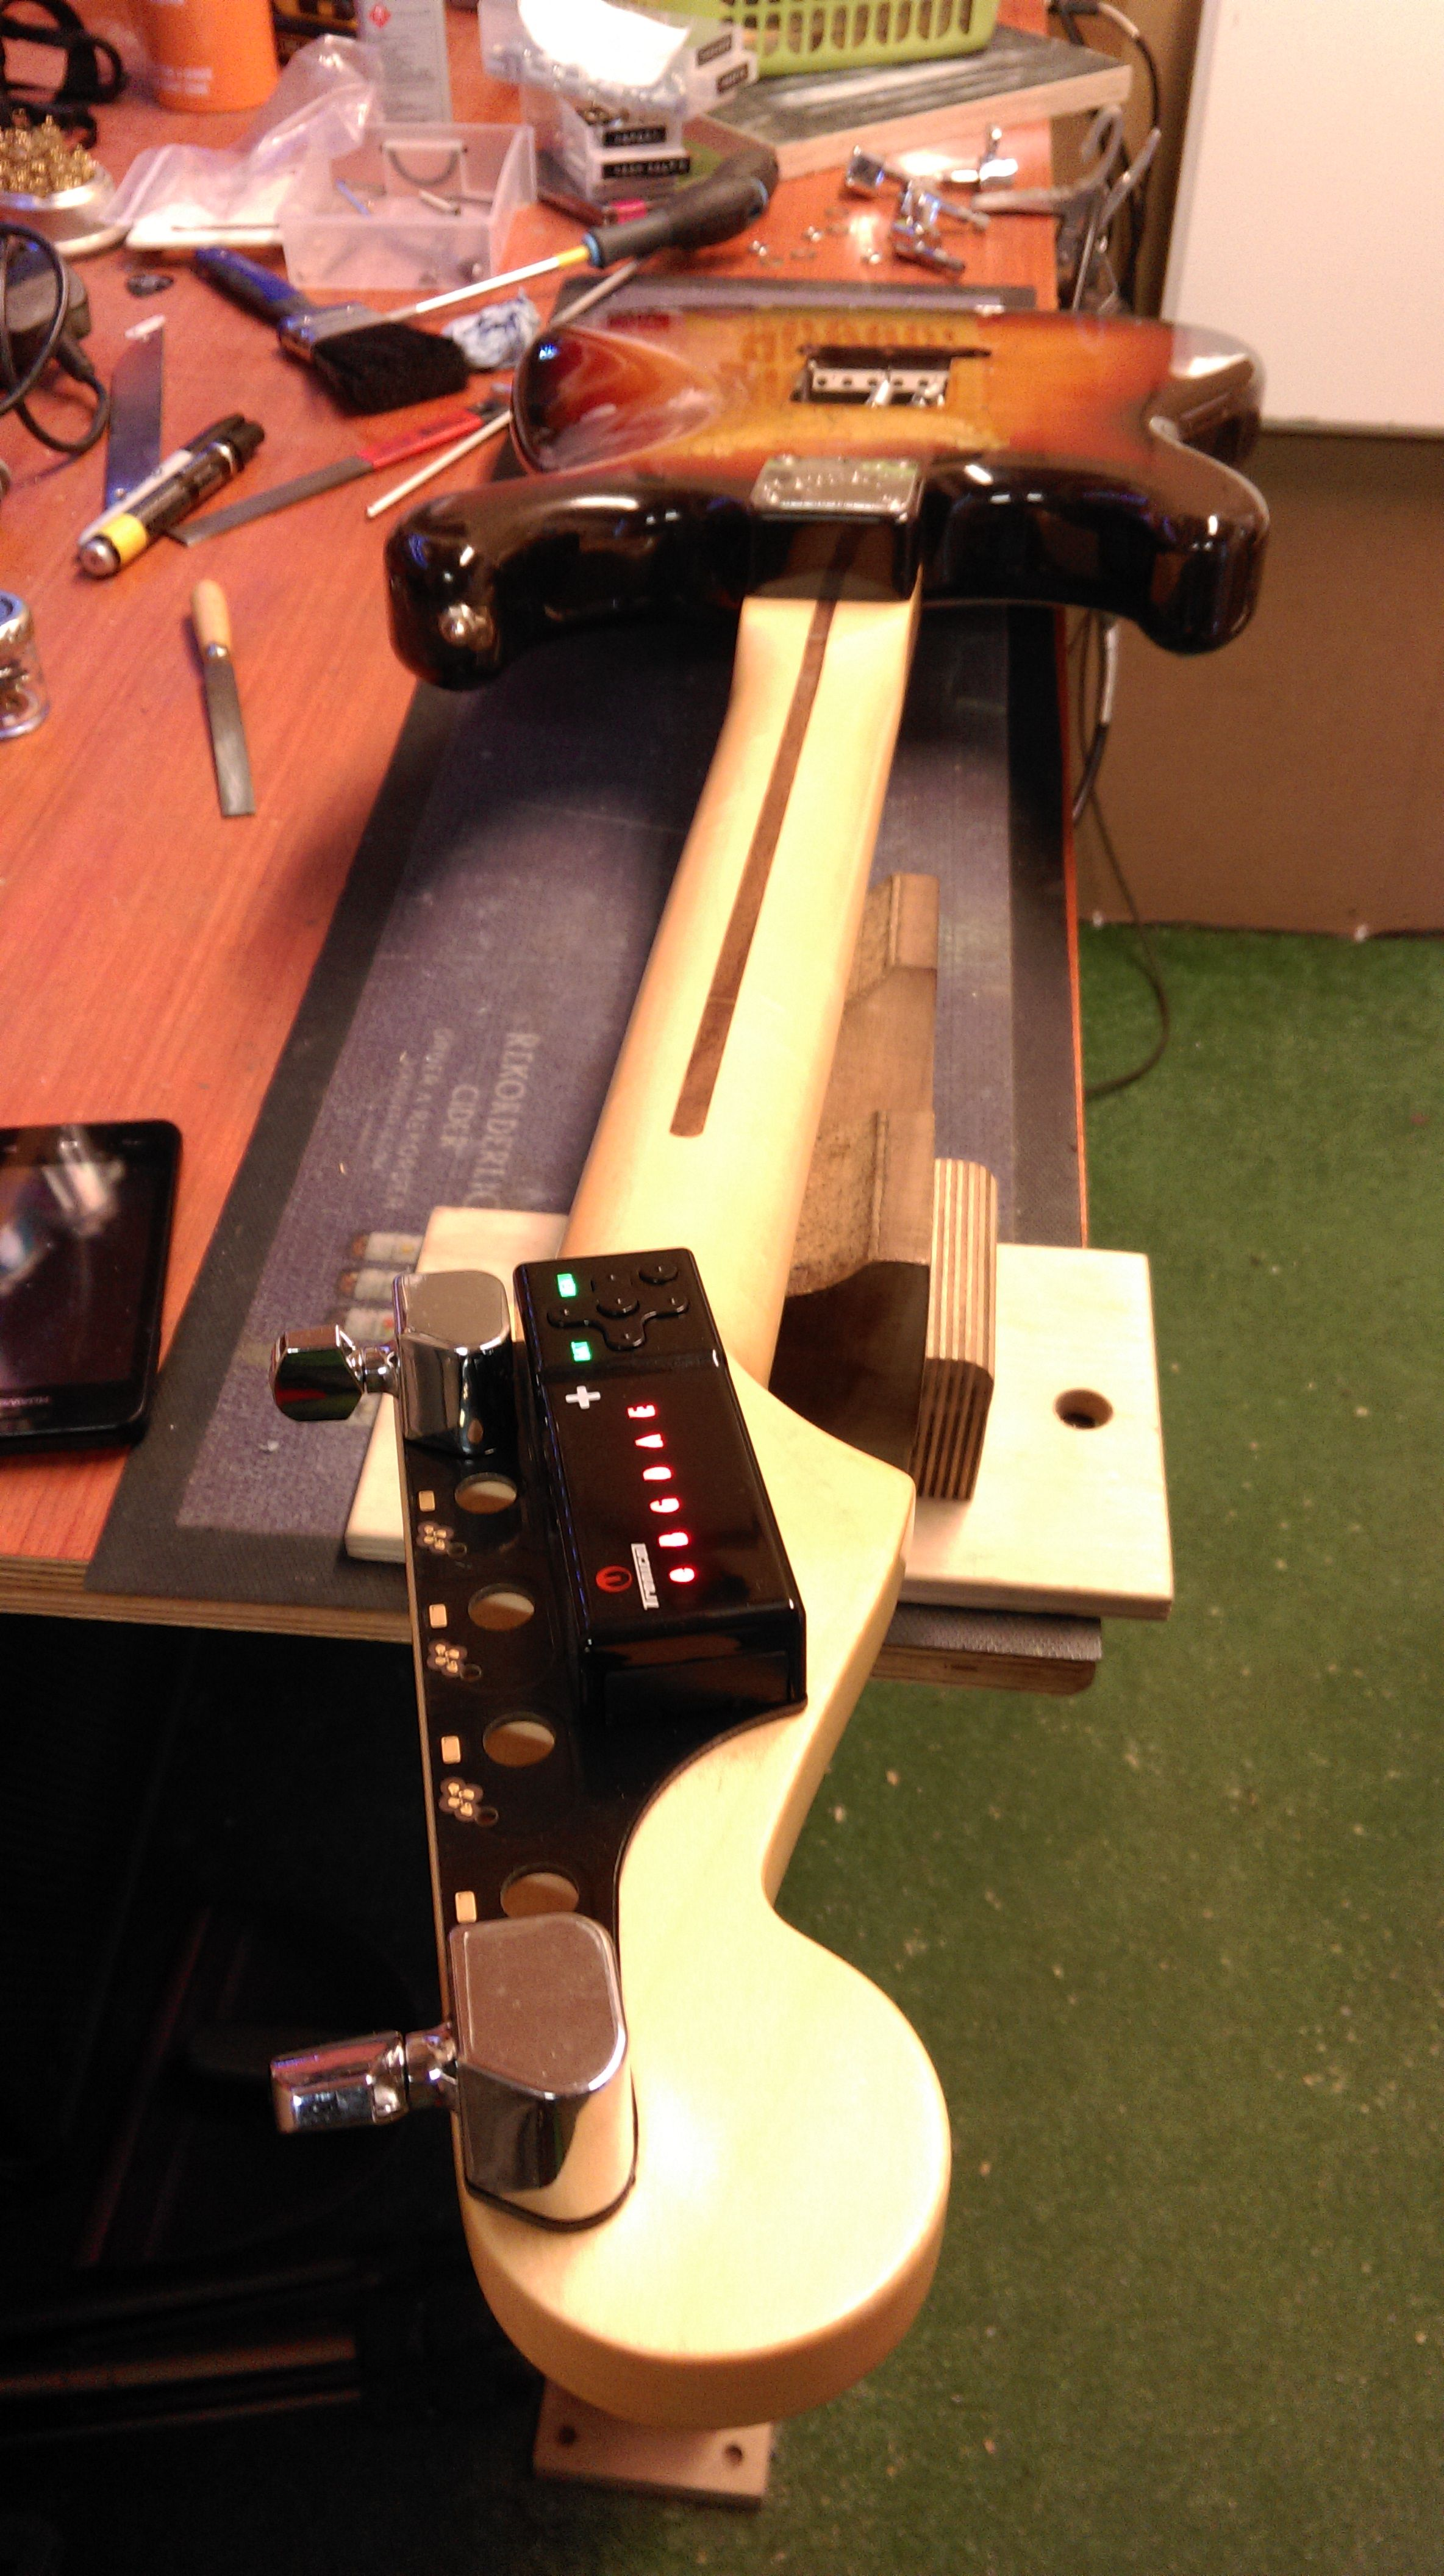 Manchester Guitar Setup And Repair Workshop Electric Bass And Acoustic Guitars Taken On For Upgrades Modifications Set Up O Acoustic Guitar Guitar Acoustic